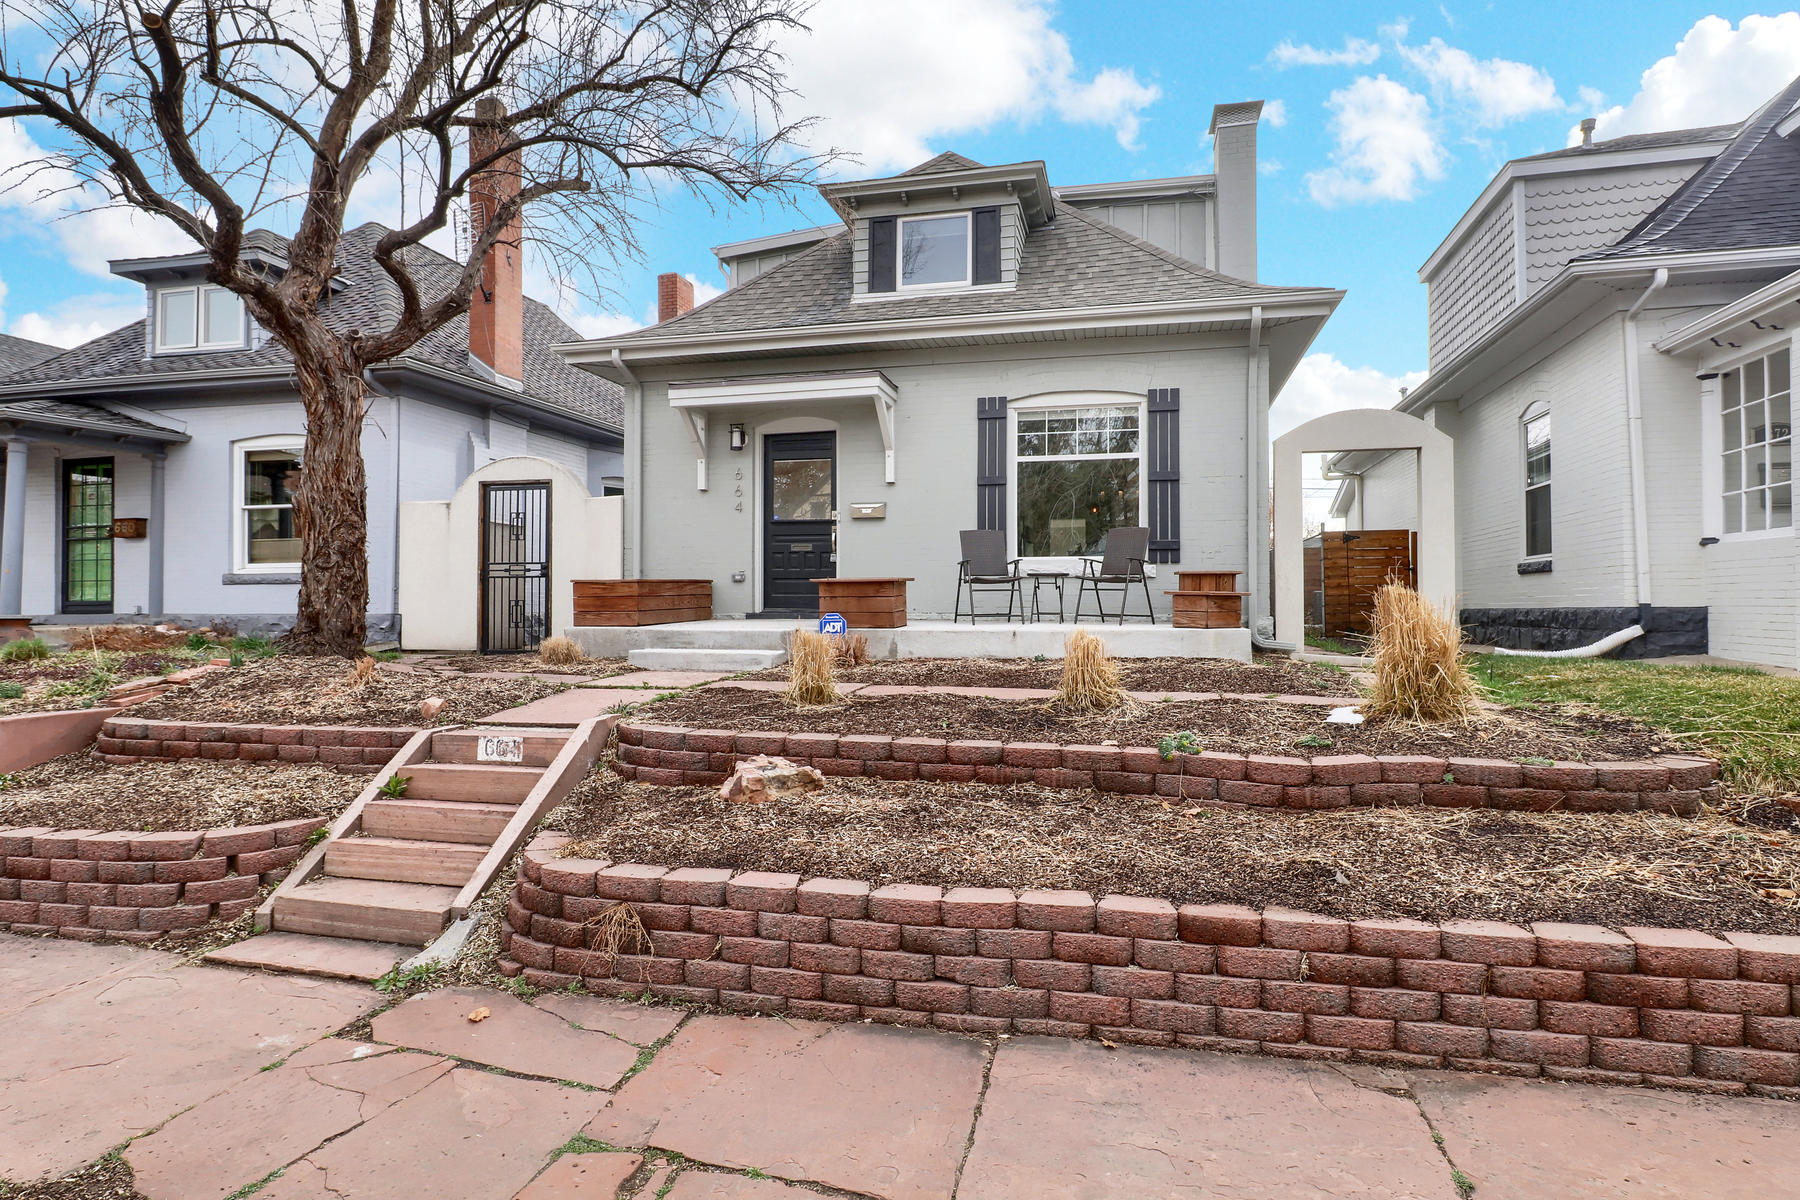 Single Family Home for Rent at Charming Bungalow In West Wash Park 664 South Grant Street Denver, Colorado 80209 United States